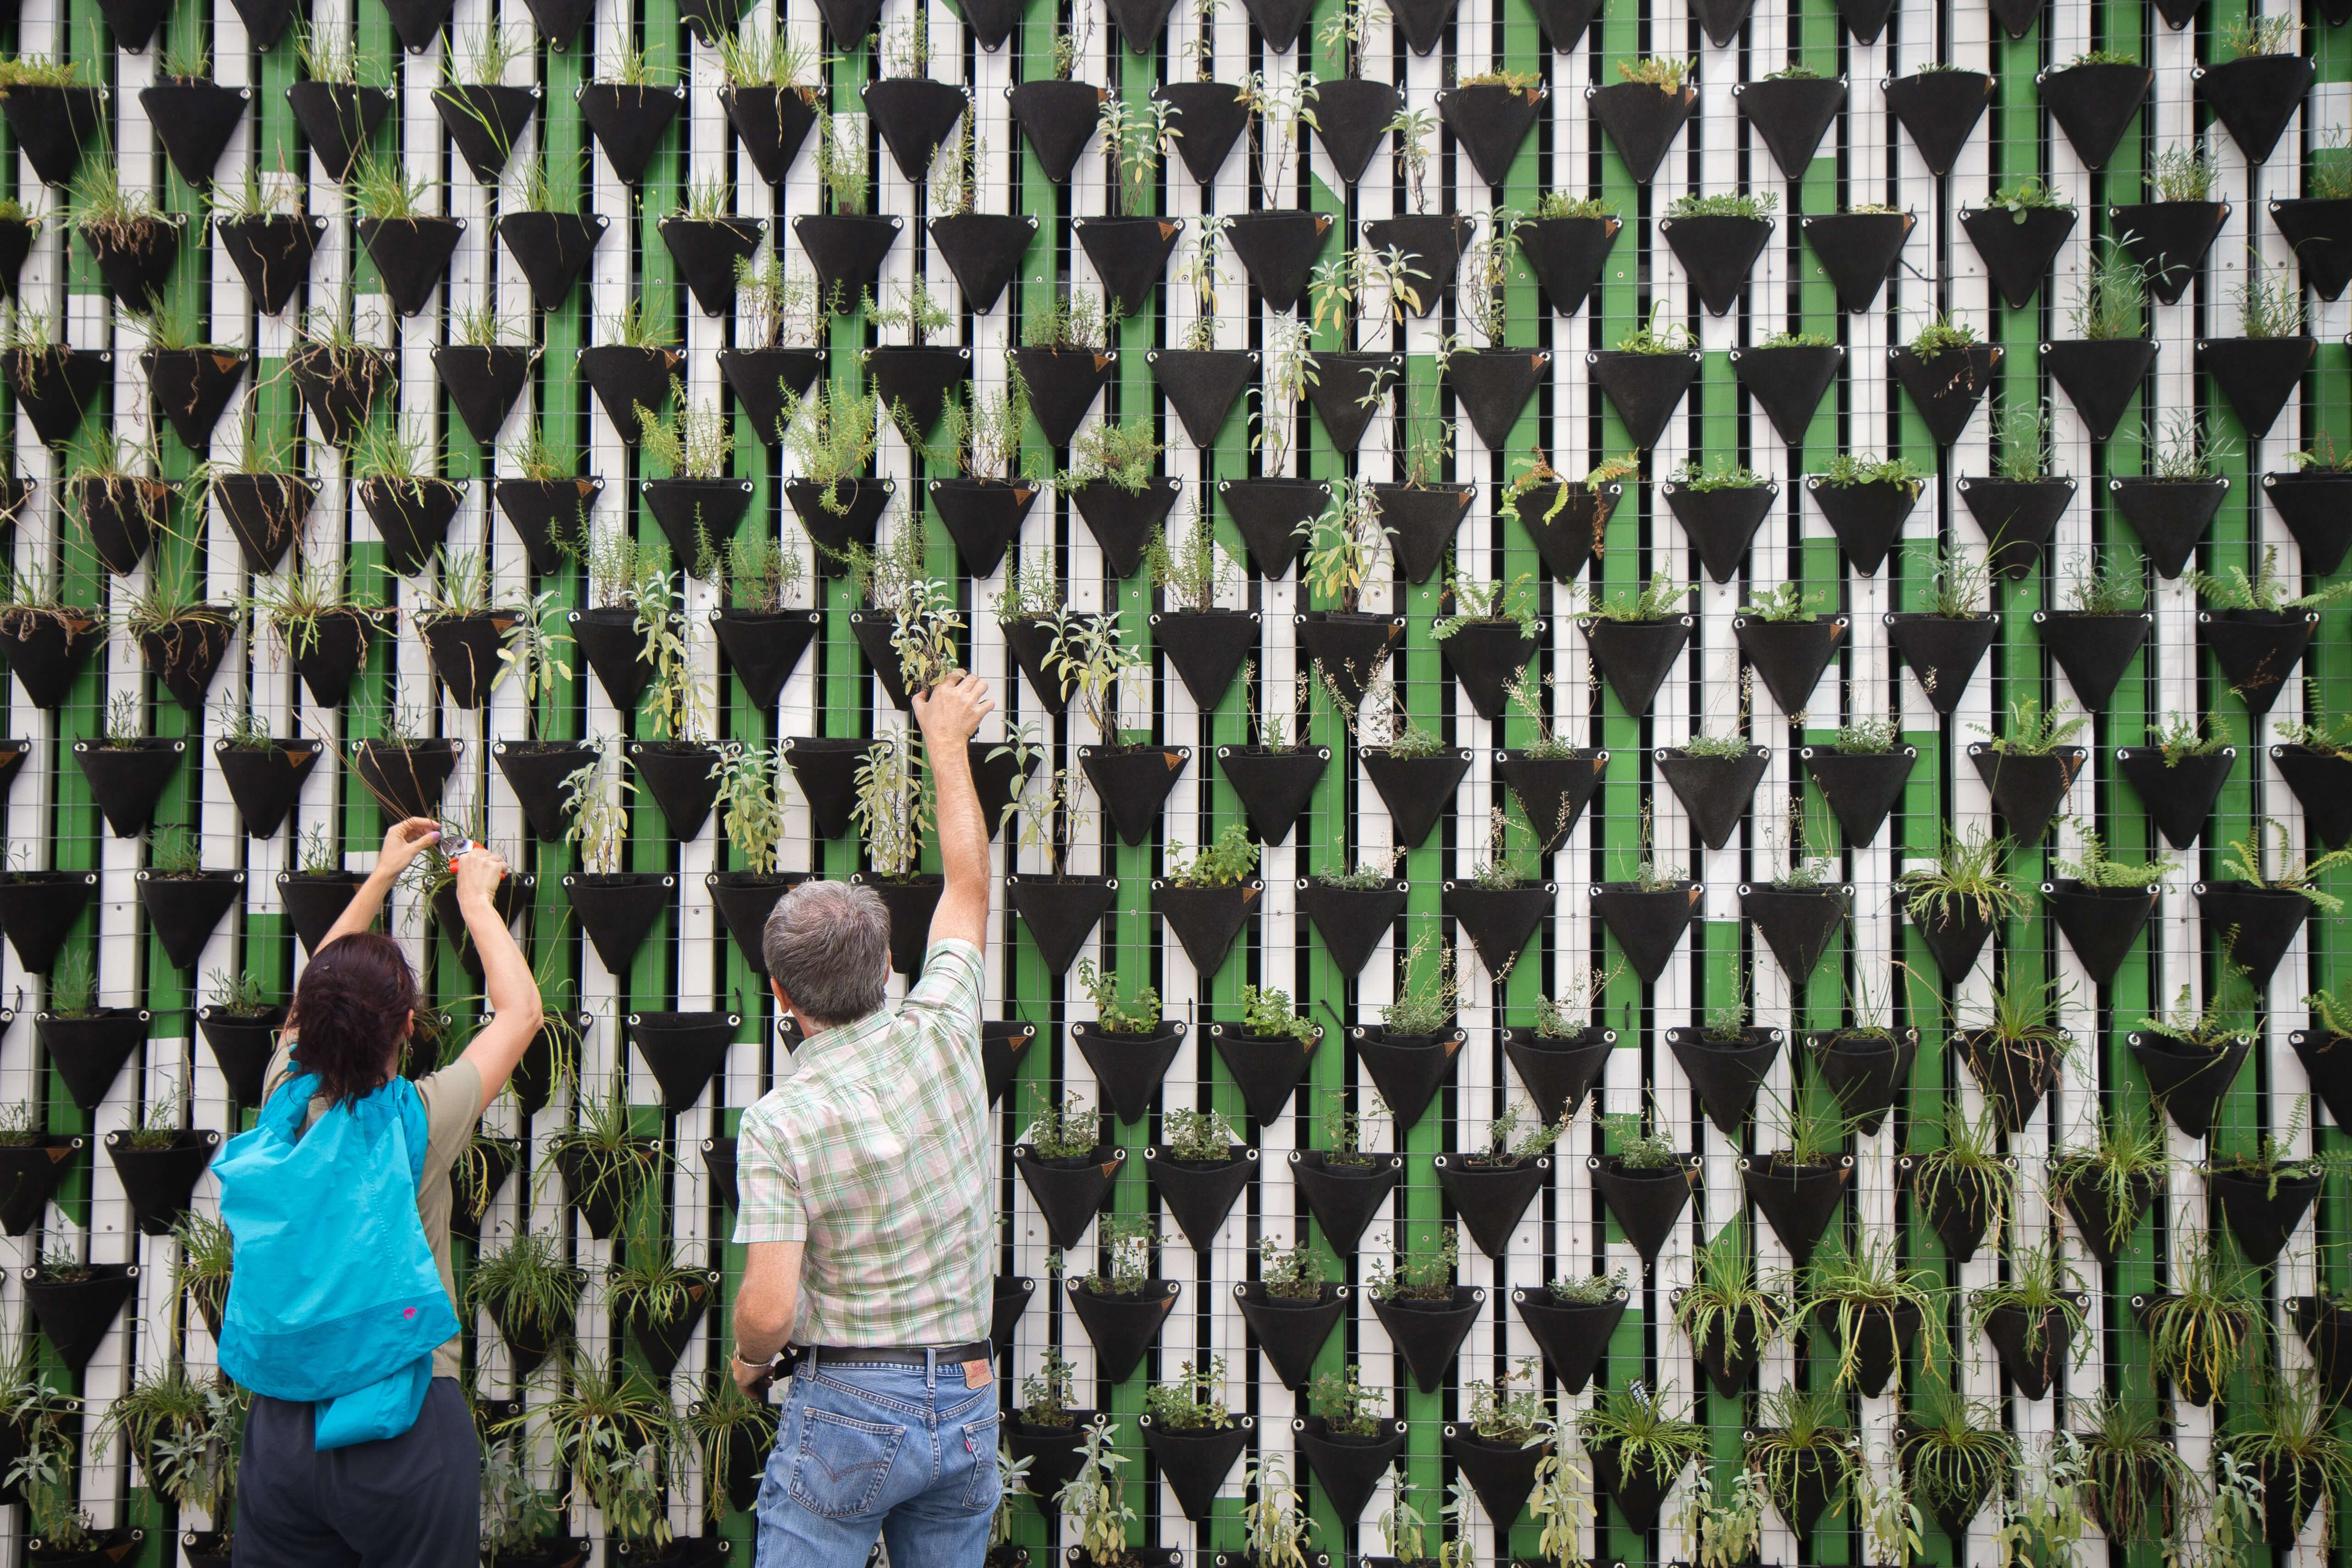 Planting a green wall together